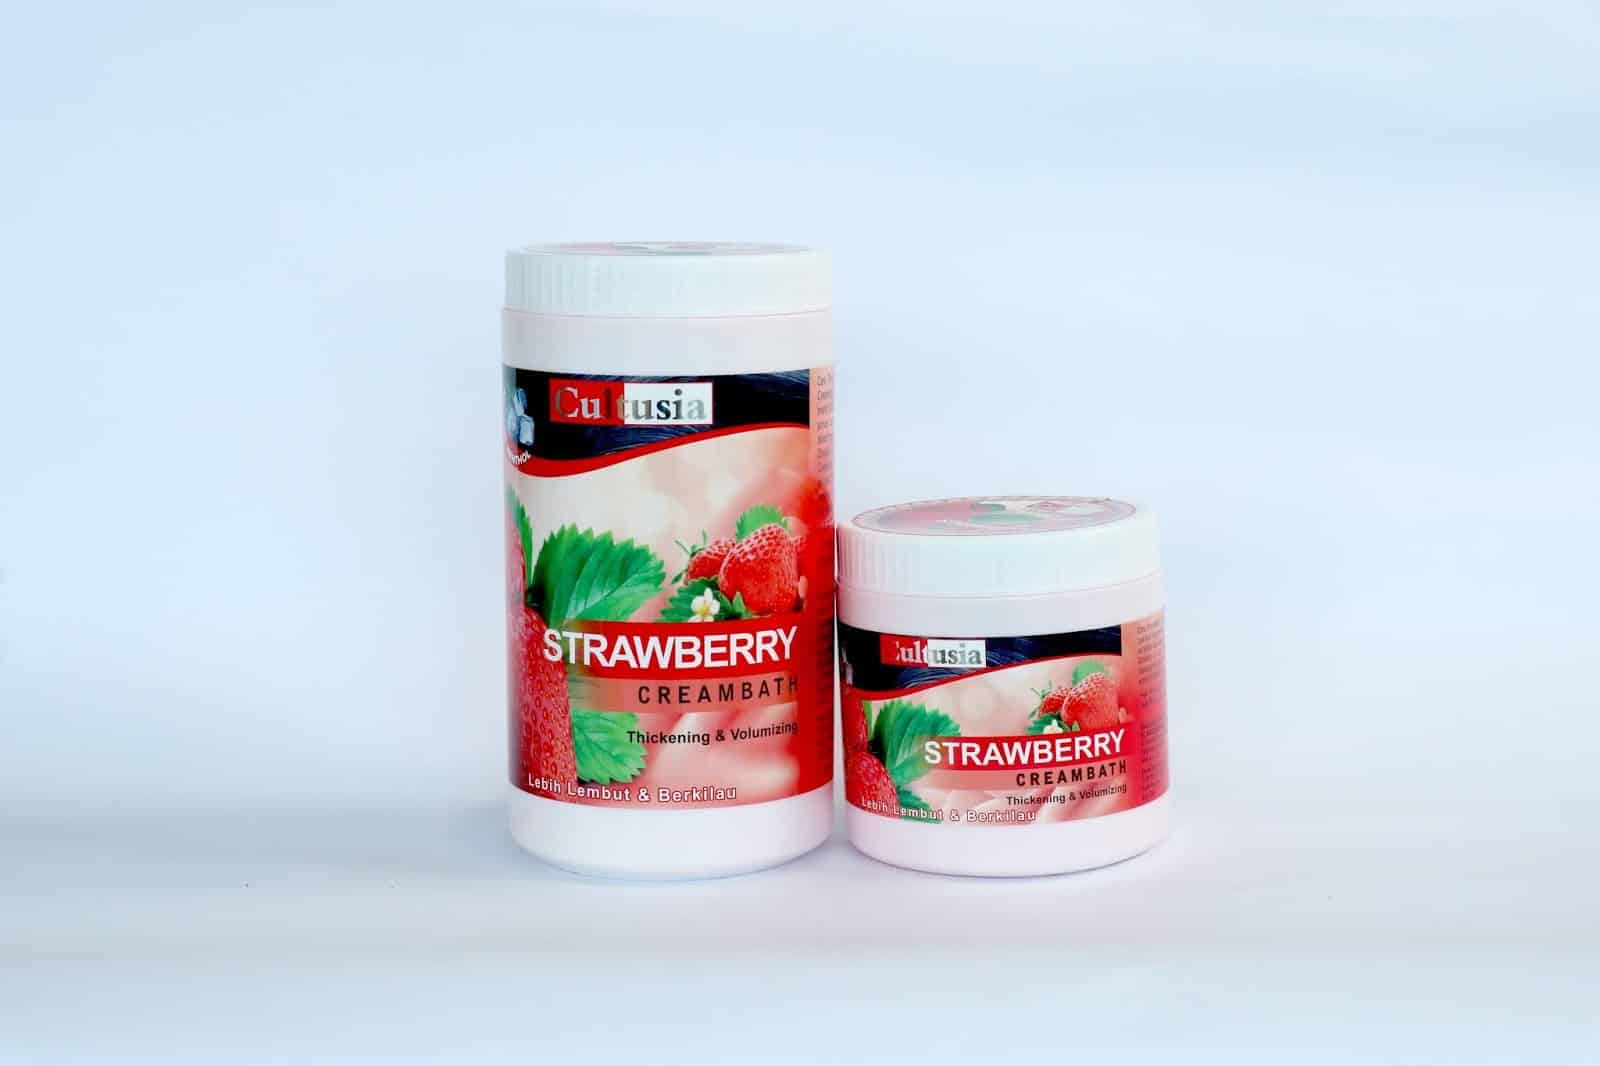 Cultusia-varian-strawberry-creambath